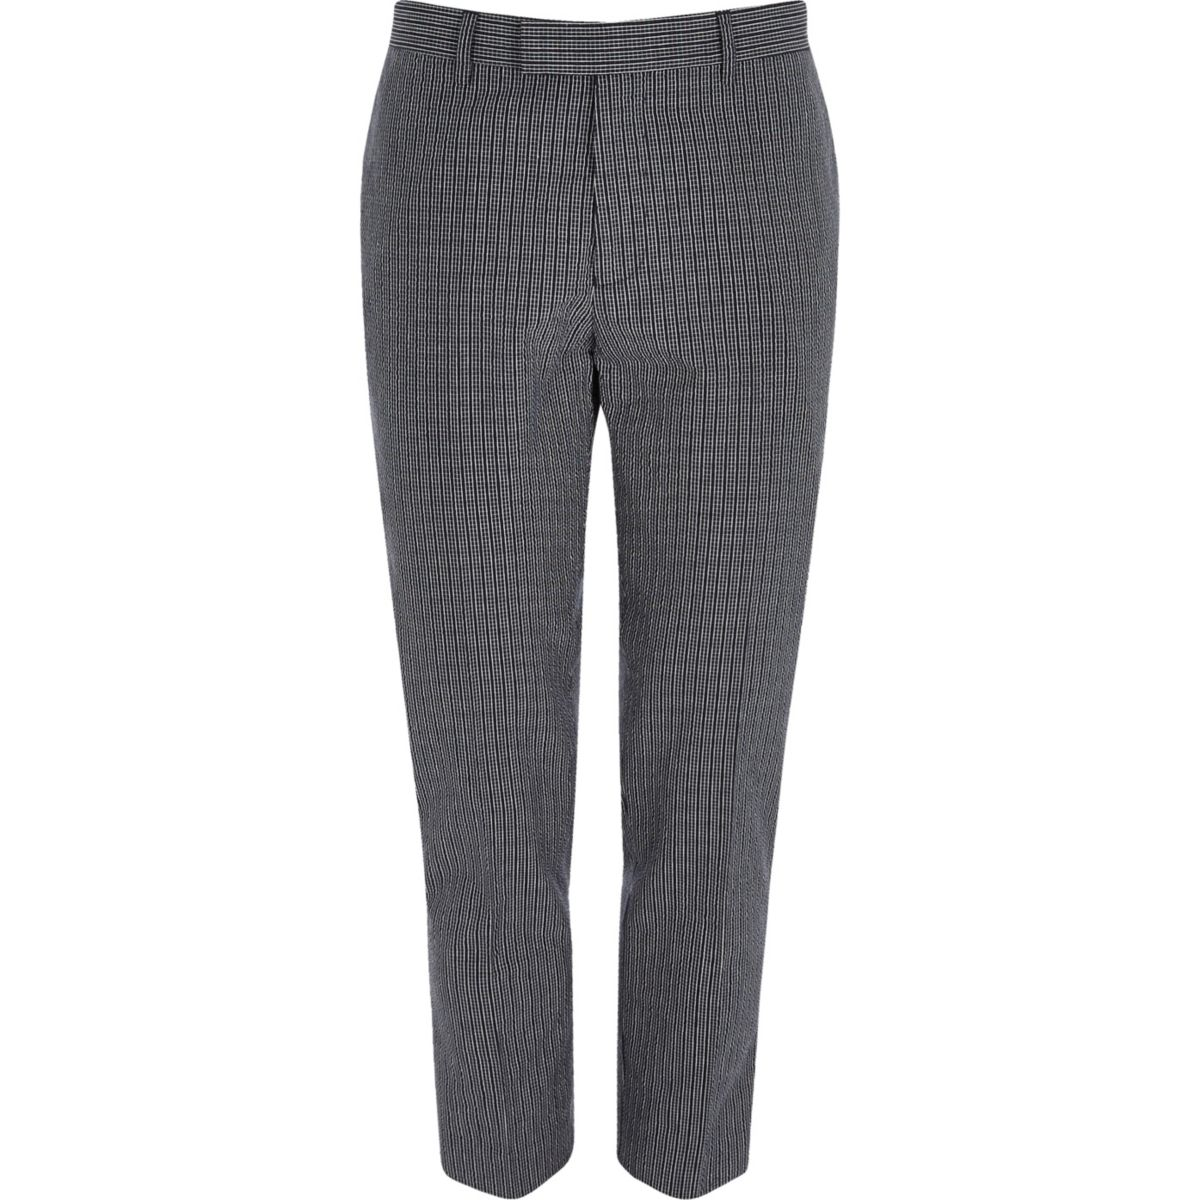 Navy seersucker skinny fit suit pants